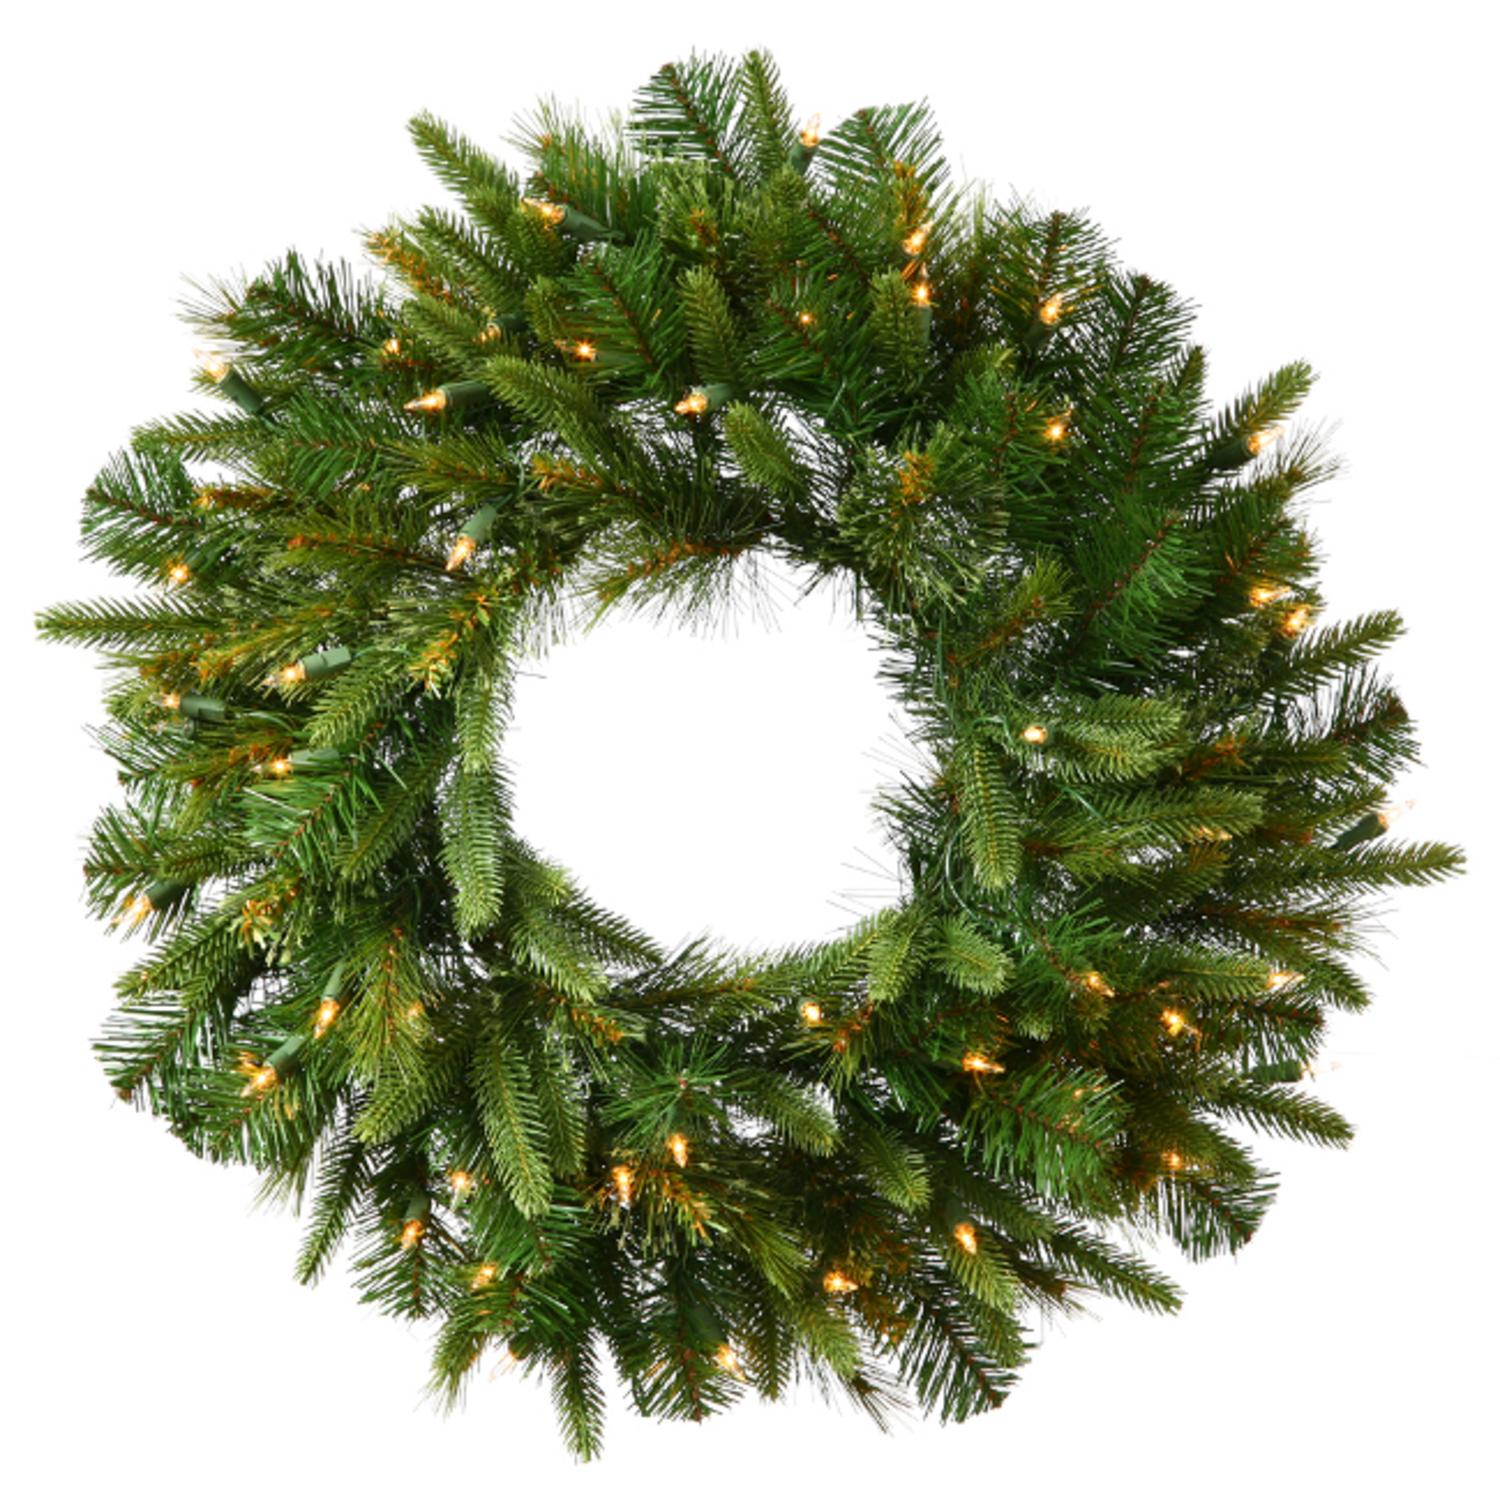 Vickerman 36 Pre - Lit Mixed Cashmere Pine Artificial Christmas Wreath  -  Warm Clear LED Lights